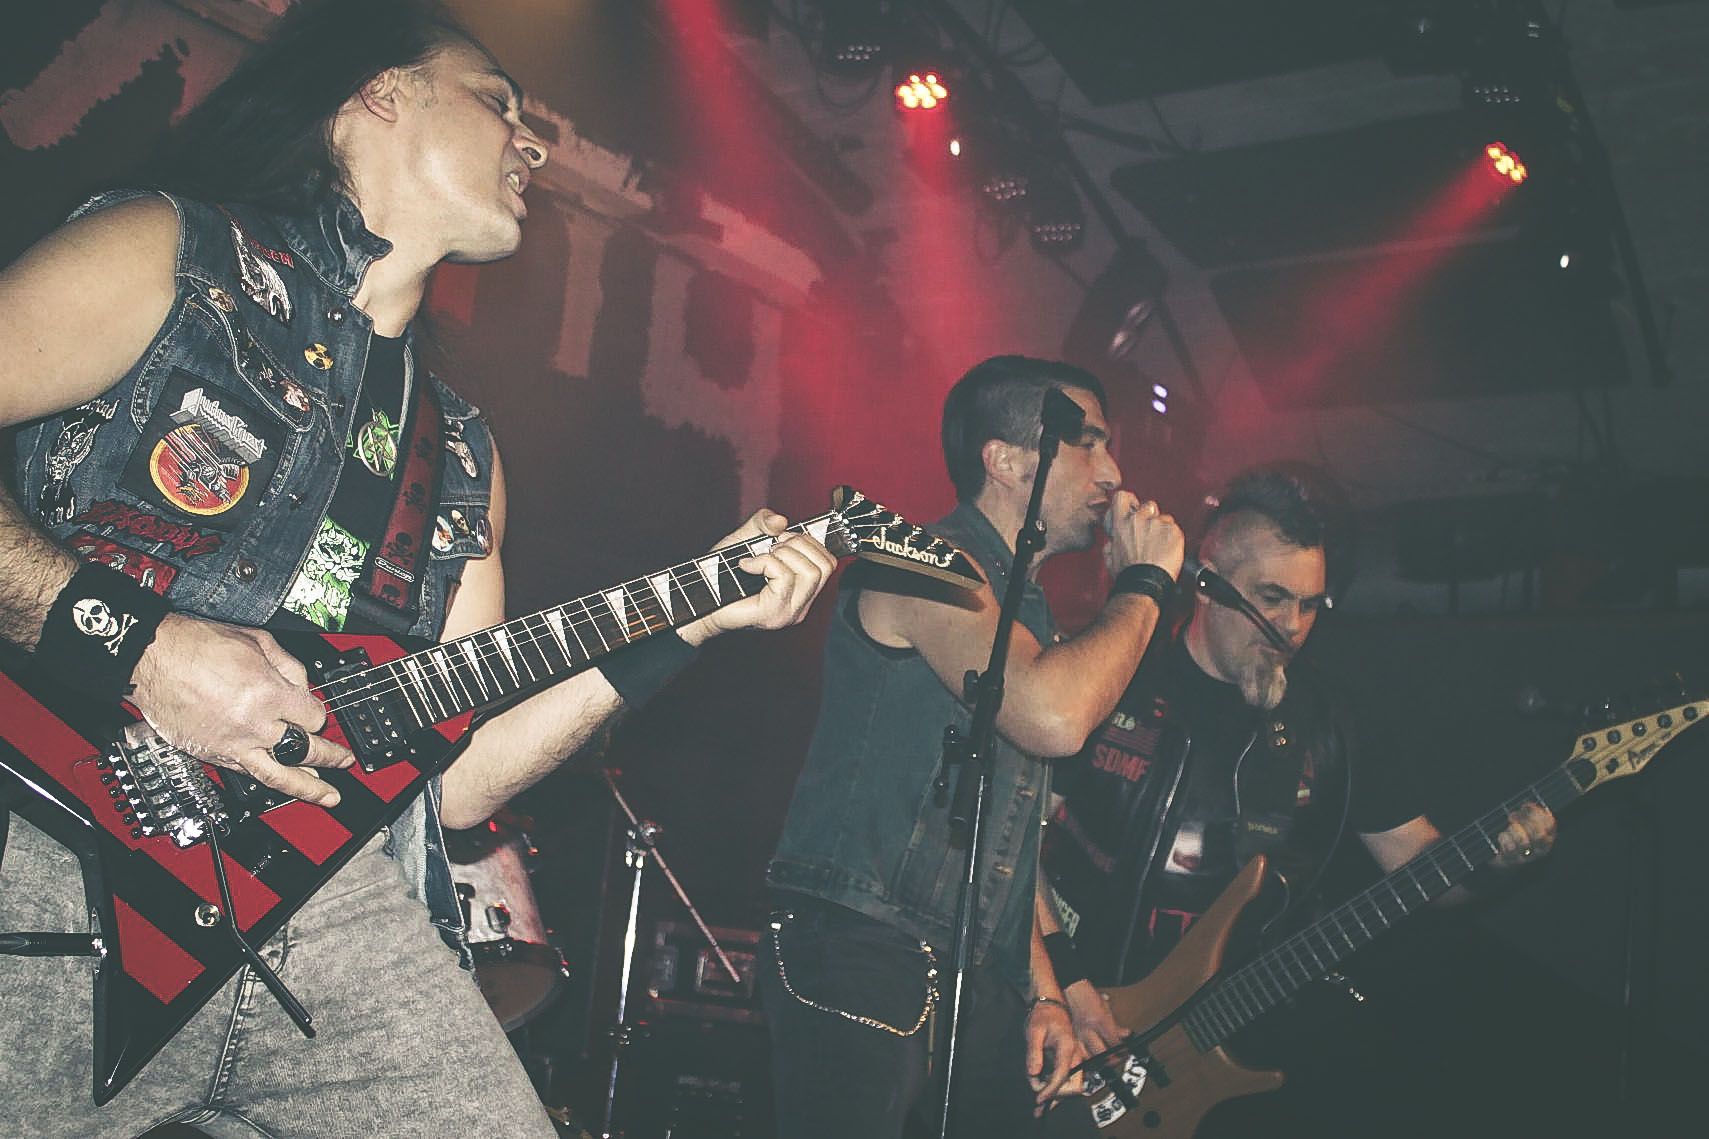 Anguish Force Austria 2 - Innsbruck supporting Atrophy - live-